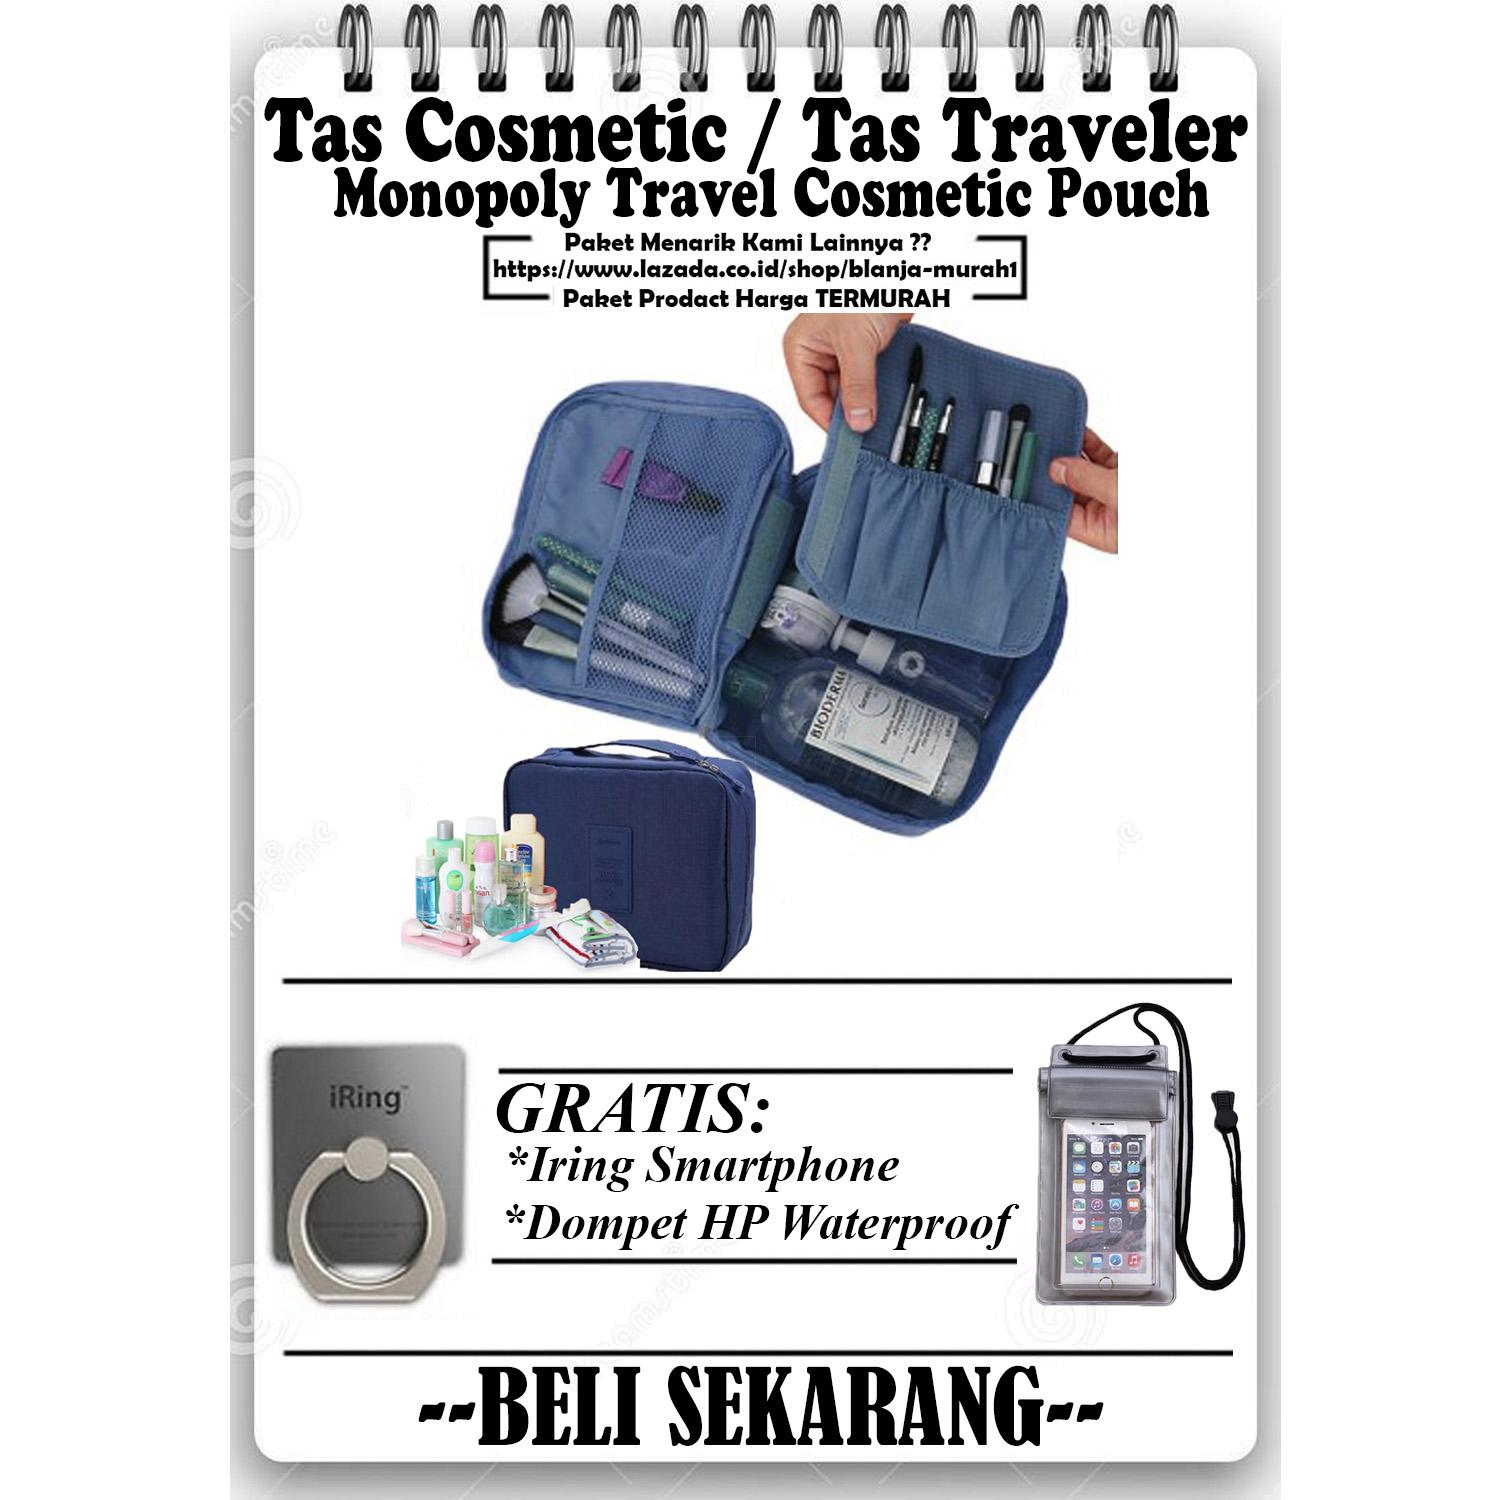 Trend's Monopoly Travel Cosmetic Pouch - Monopoly Cosmetic Organizer - Tas Treveler - Navy GRATIS Iring